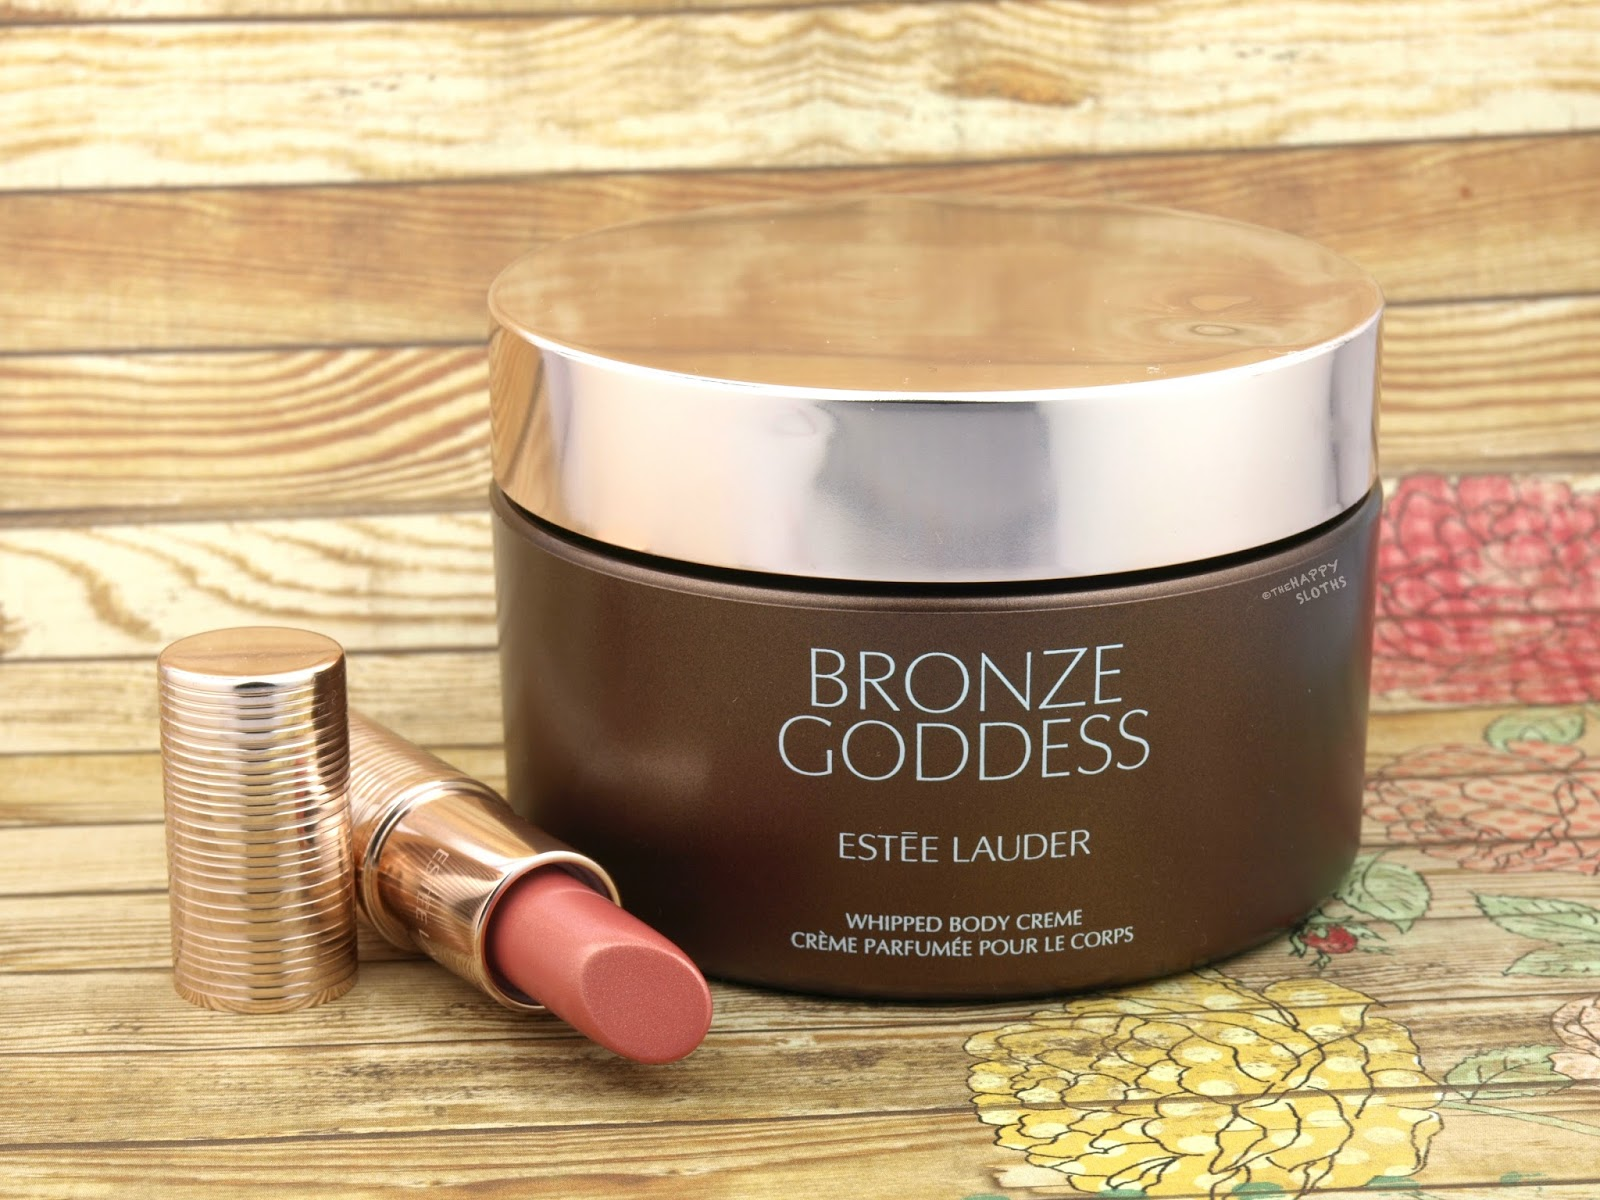 Estee Lauder Bronze Goddess Whipped Body Creme & Summer Lip Glow: Review and Swatches